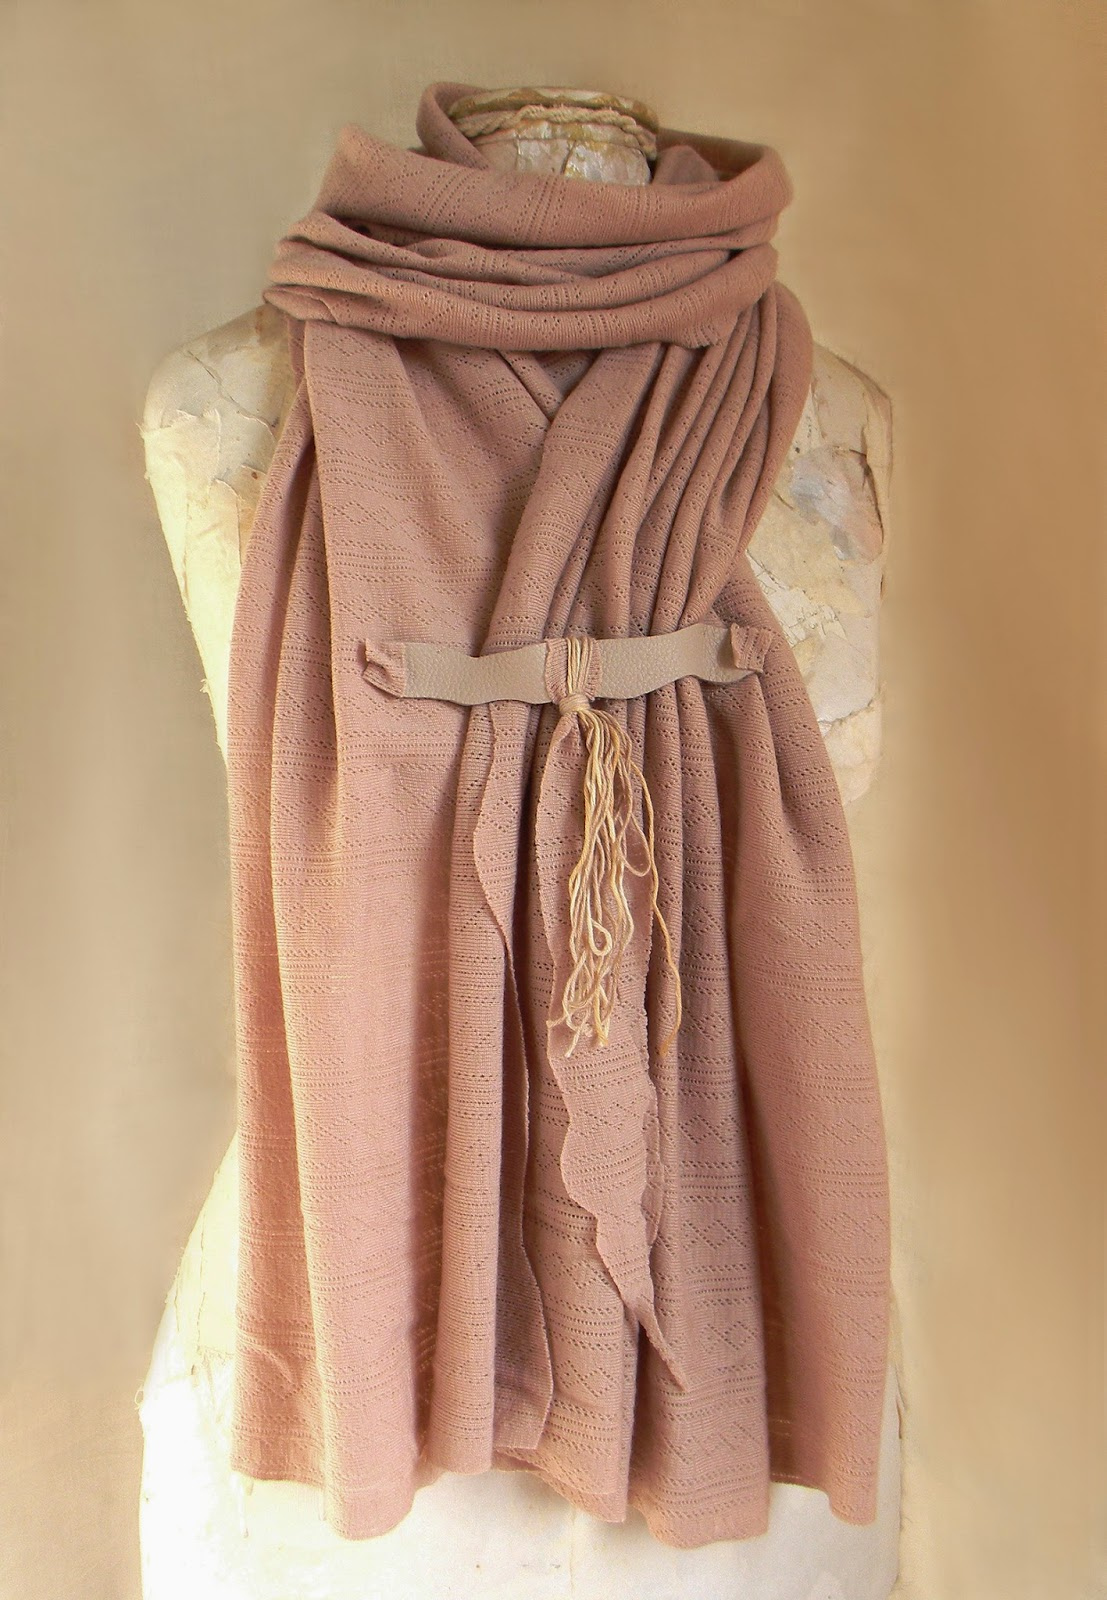 Eco Chic Wide Neckwear Shawl, Woodland and Rustic Chic Poncho with Leather Strap Lanyard and Organic Cotton Cords